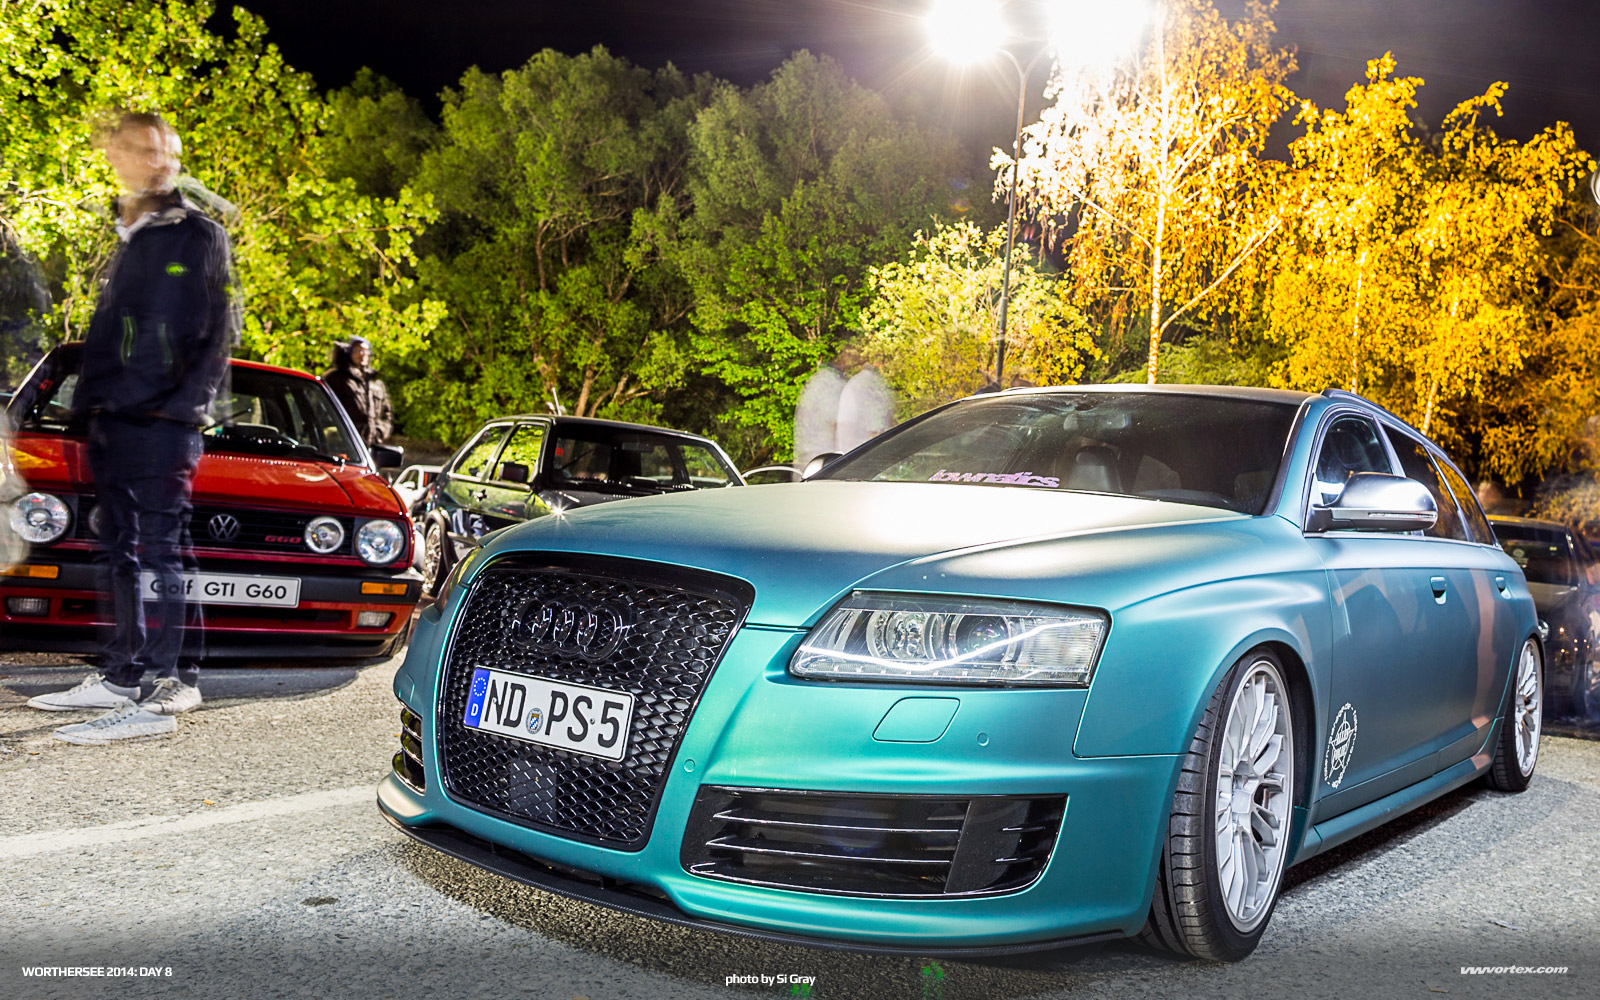 2014-Worthersee-Day-8-Si-Gray-1128